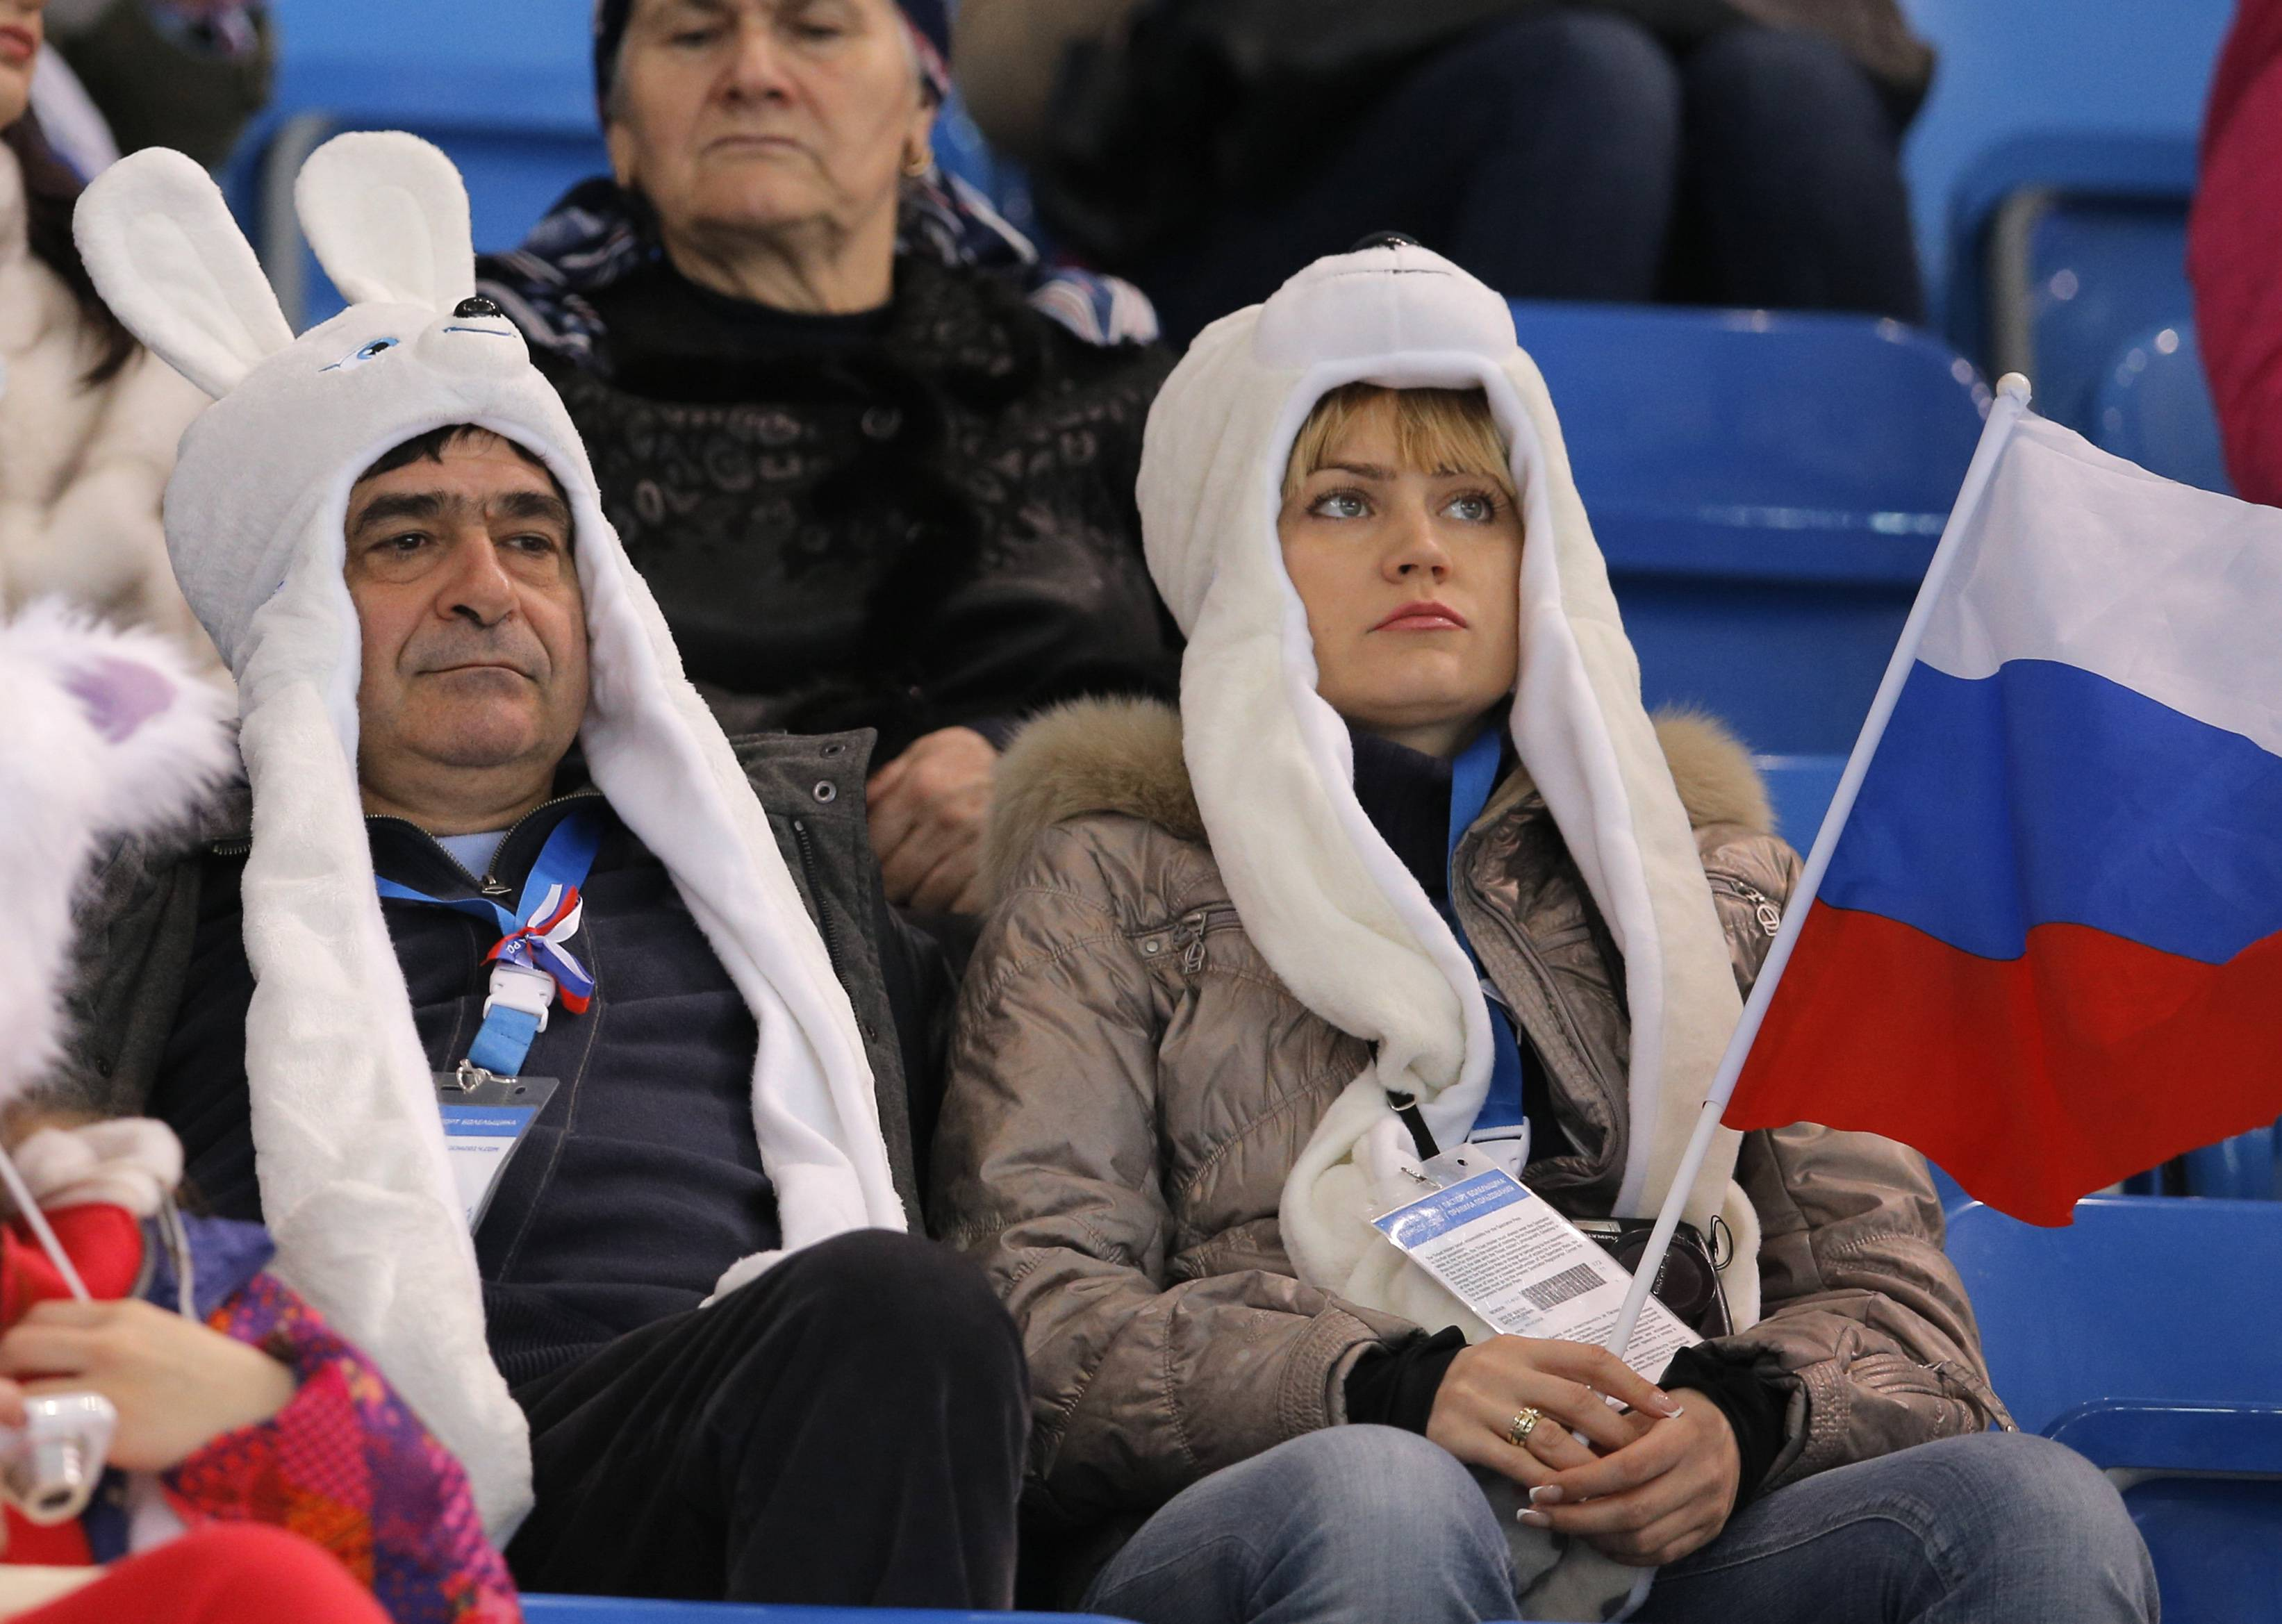 Spectators wait for the start of the ice dance short dance figure skating competition at the Iceberg Skating Palace during the 2014 Winter Olympics, Sunday, Feb. 16, 2014, in Sochi, Russia.